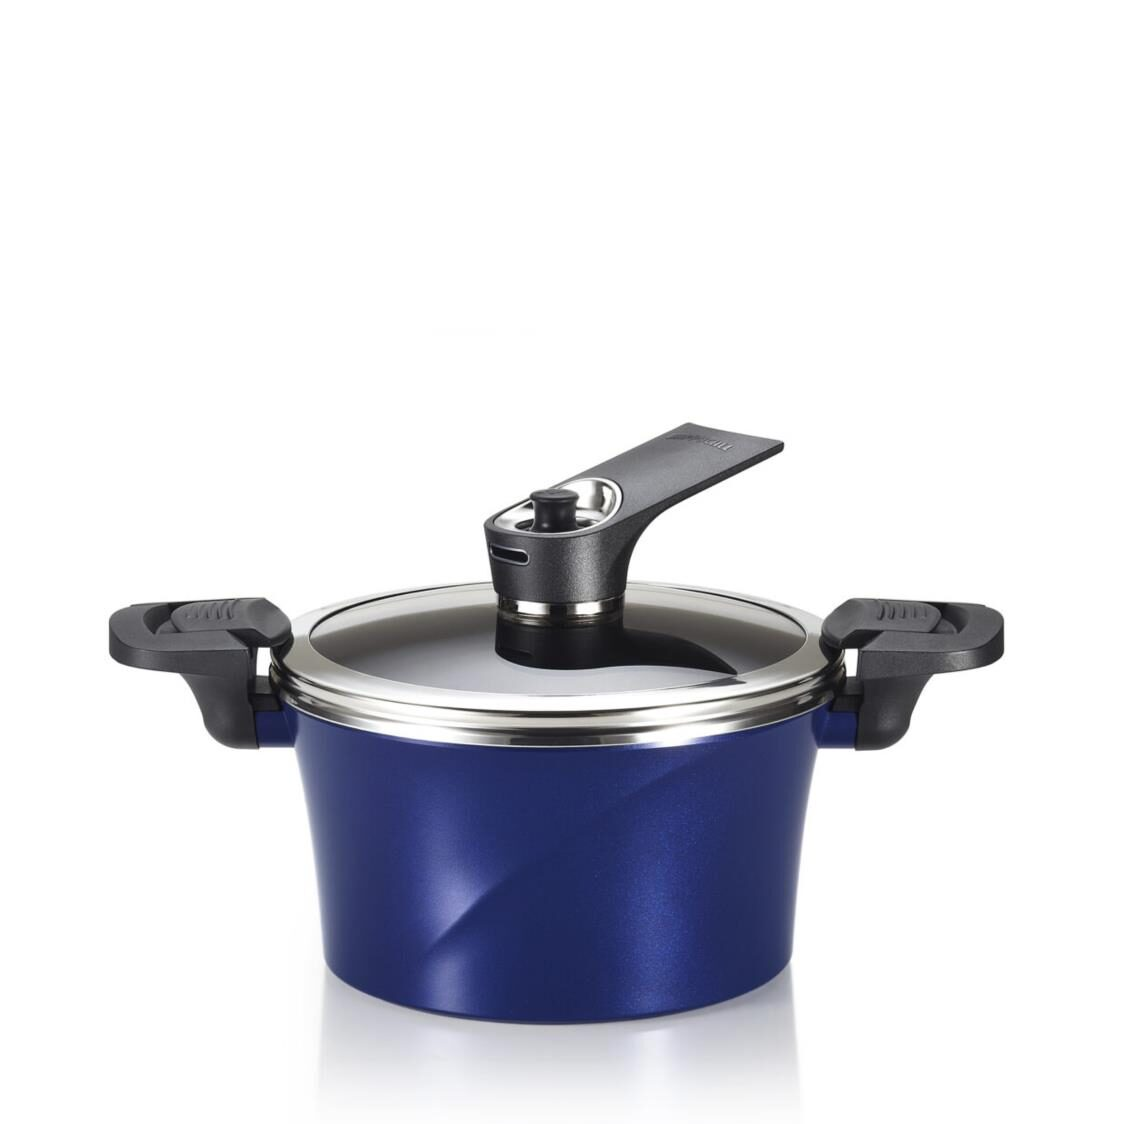 IH Vacuum 24cm High Stock Pot Induction Friendly 3003-0085